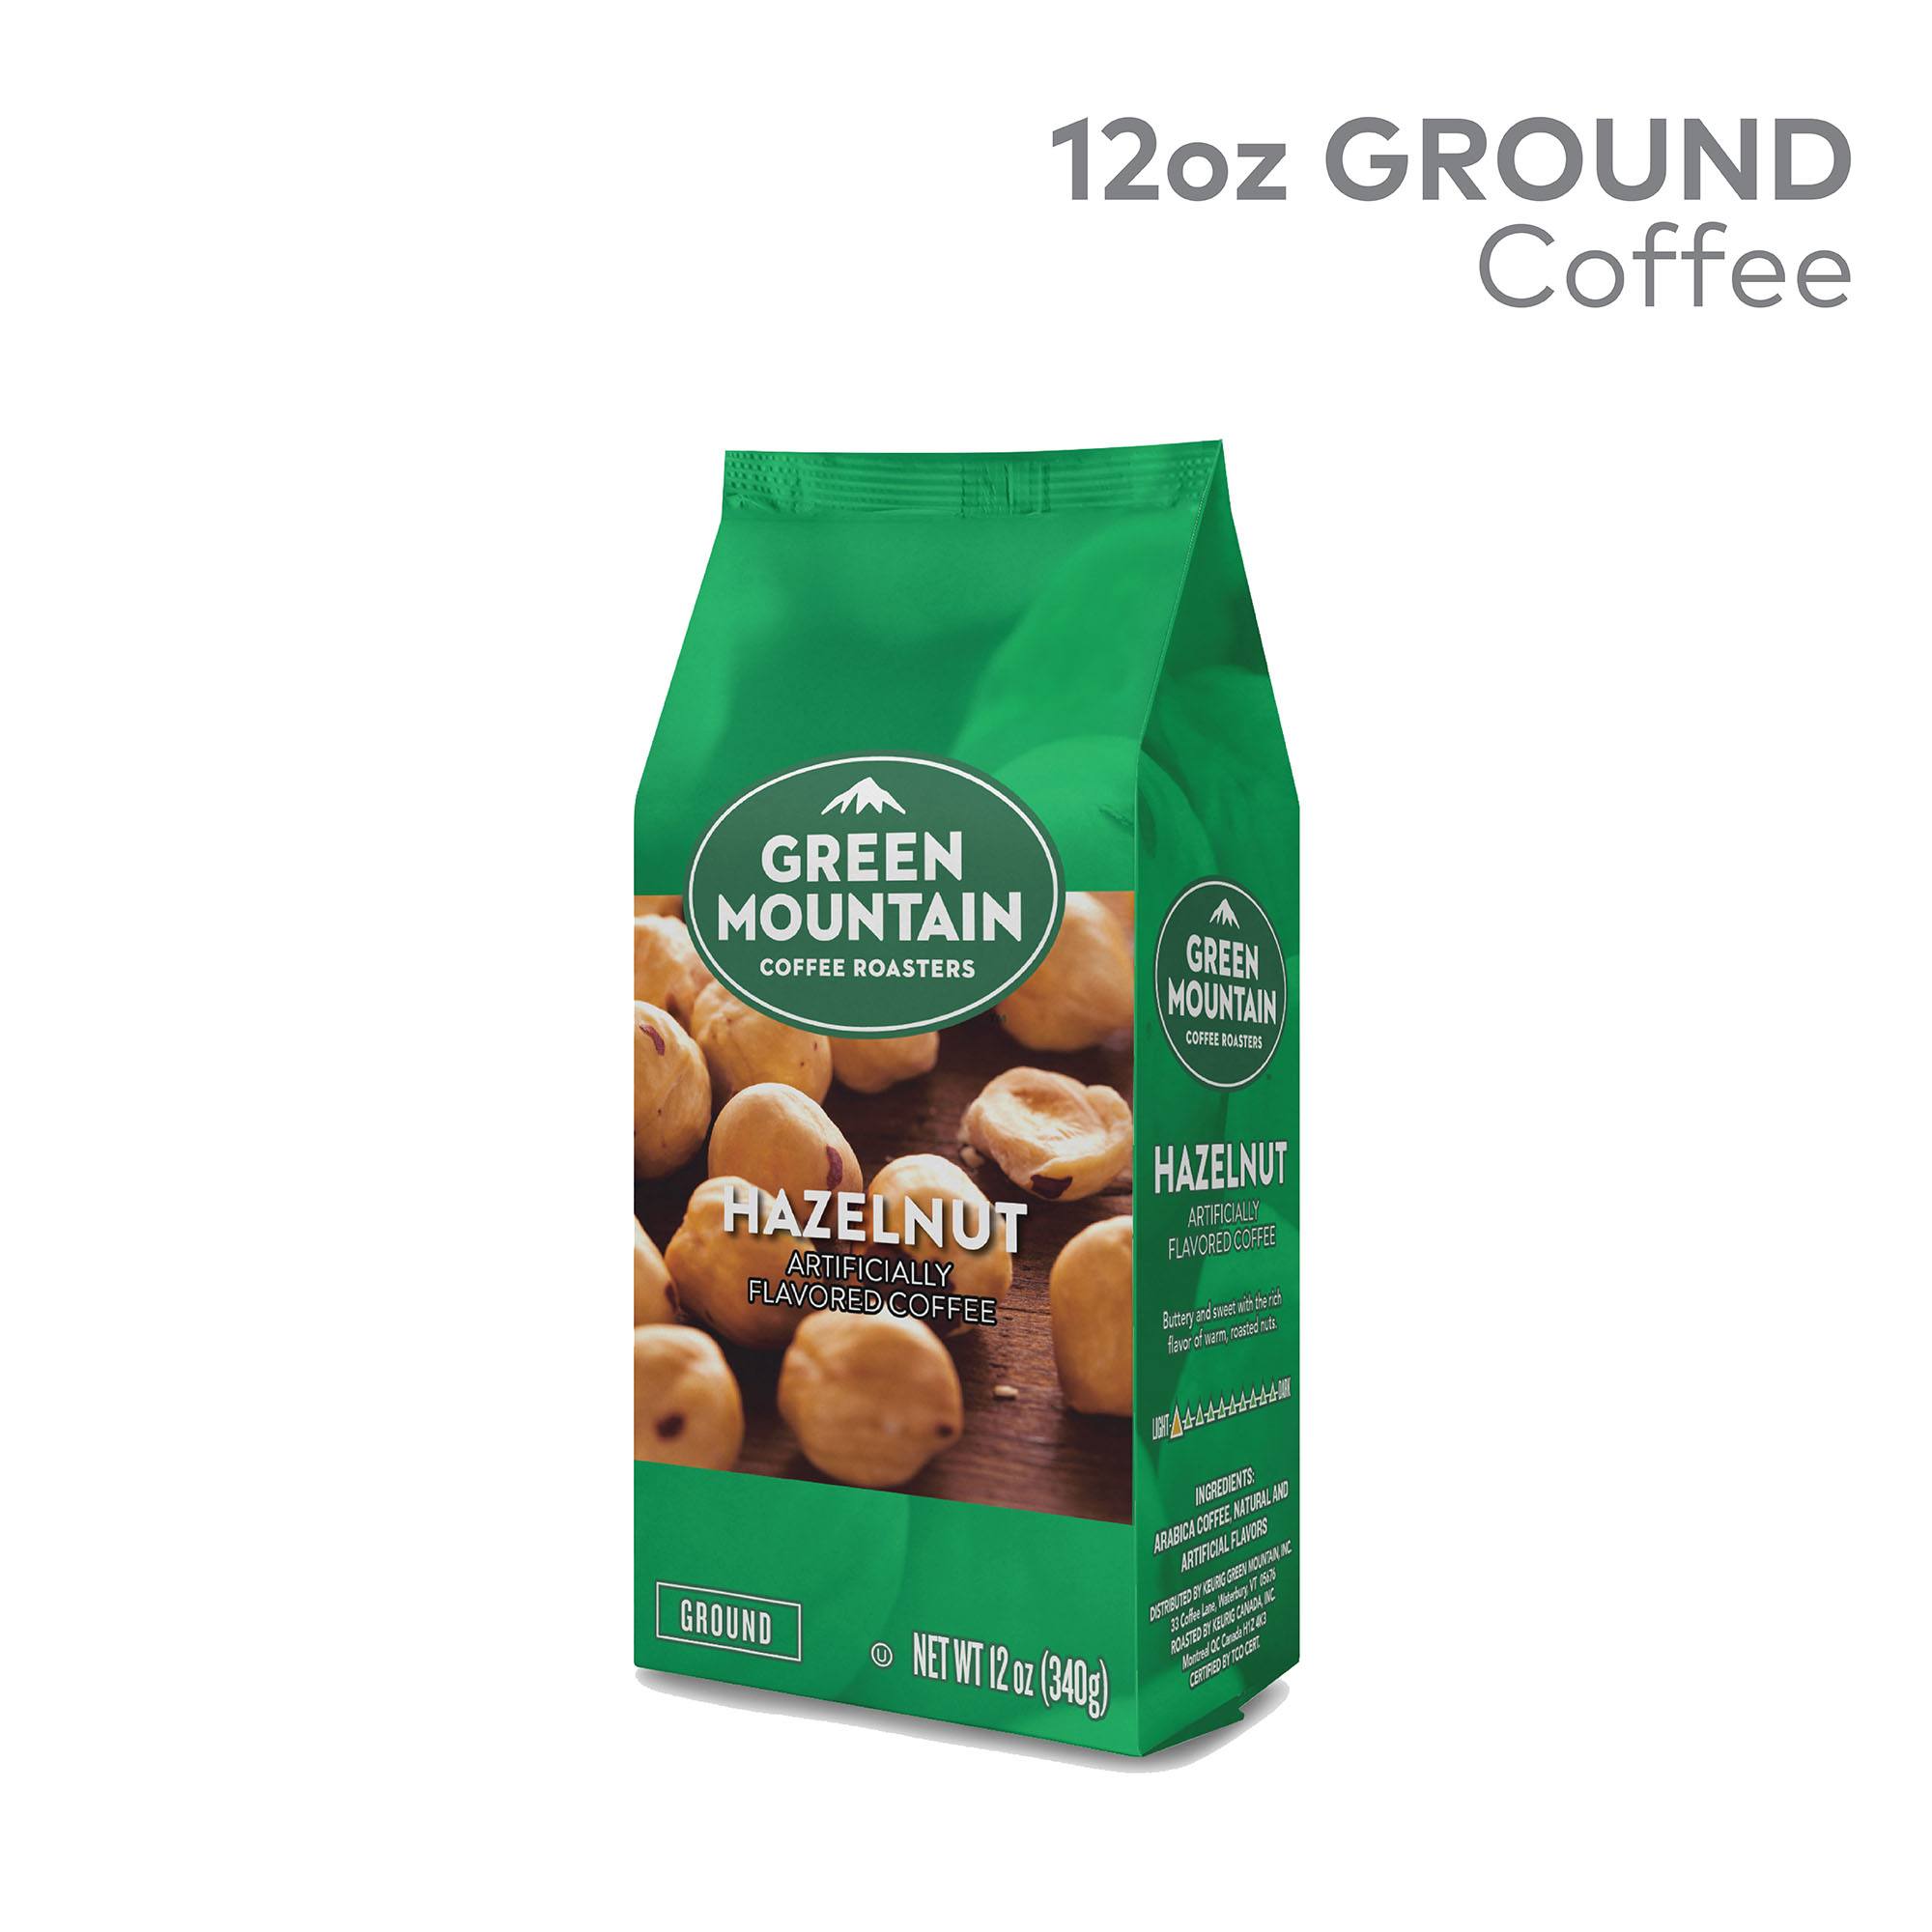 Green Mountain Coffee Roasters, Hazelnut, Ground Flavored Coffee, Light Roast, Bagged 12oz